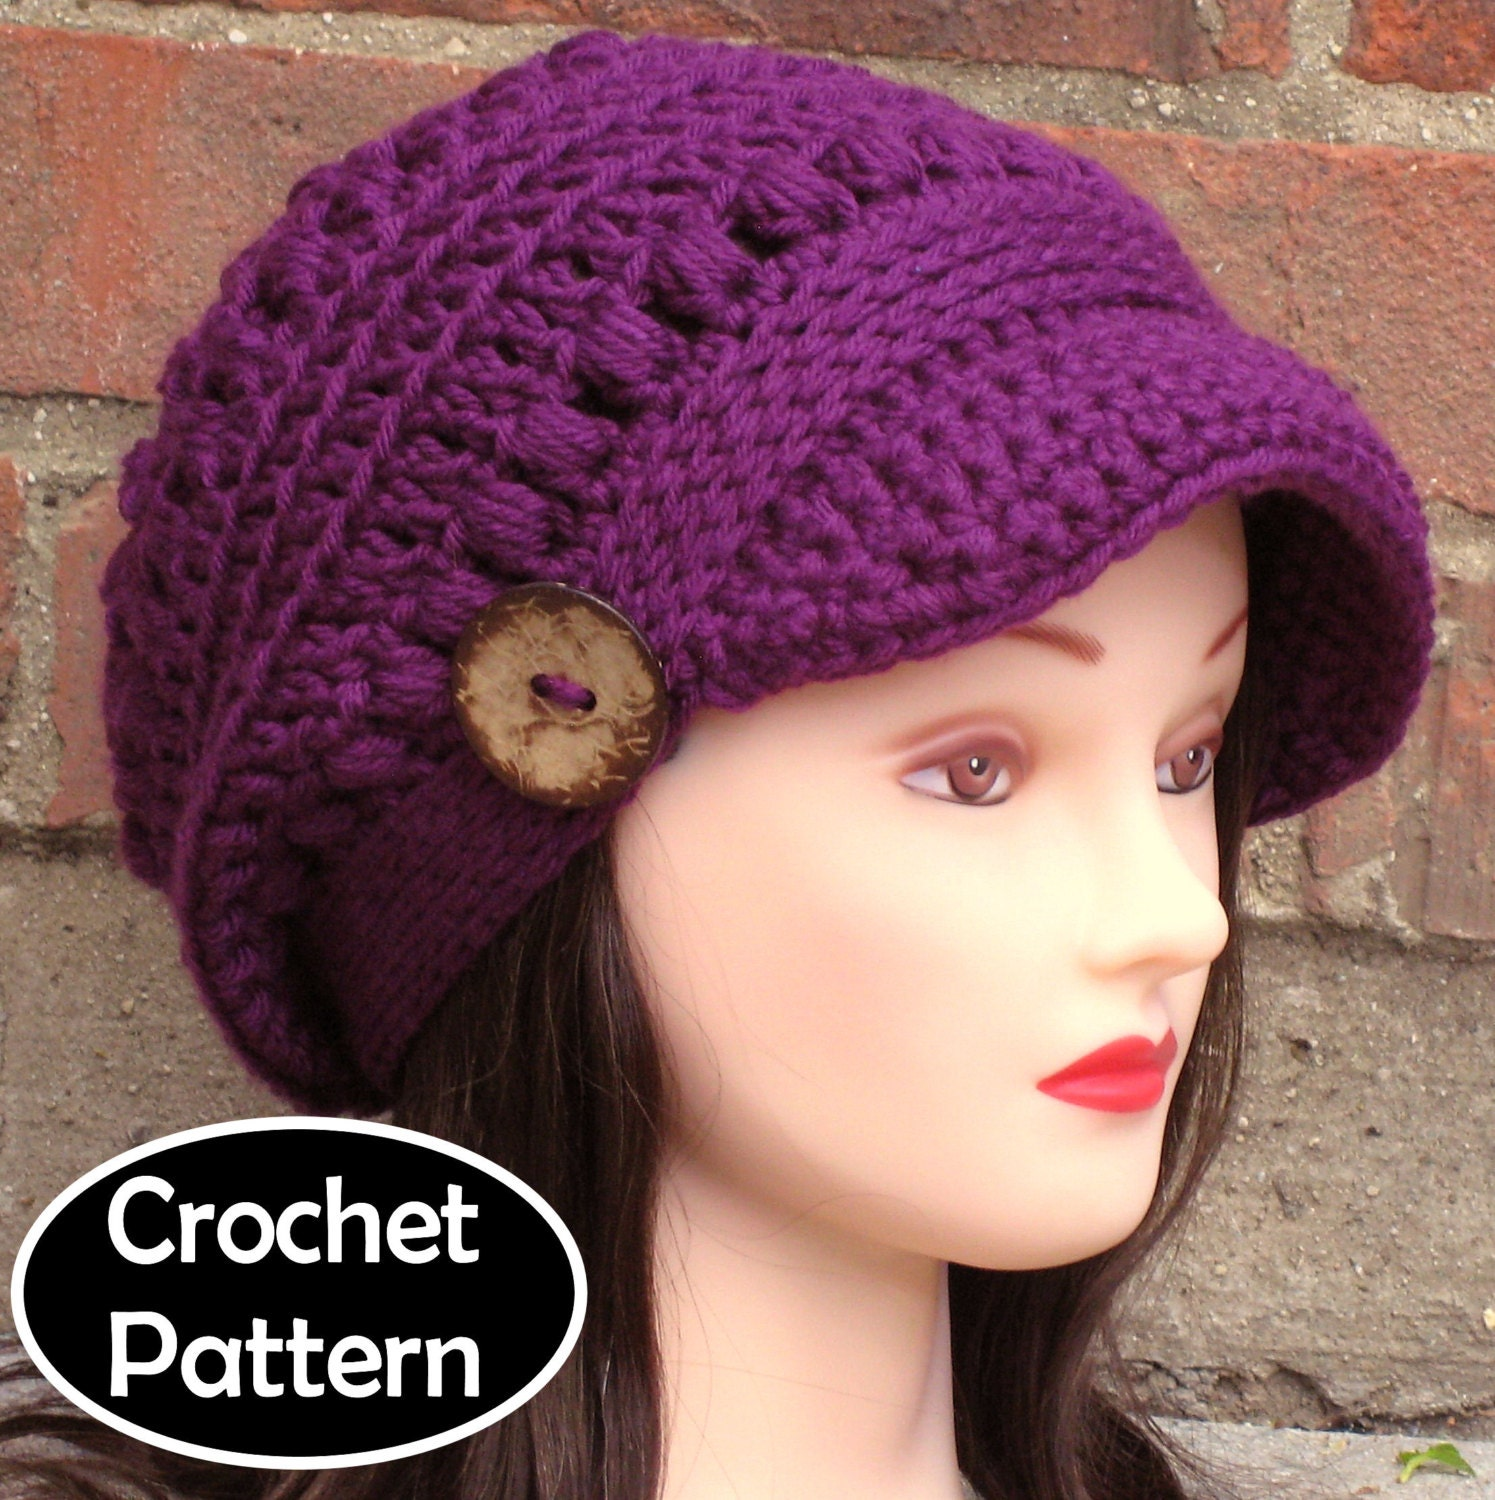 Crochet hat pattern instant download pdf brooklyn newsboy brimmed crochet hat pattern instant download pdf brooklyn newsboy brimmed beanie hat womens permission to sell dt1010fo